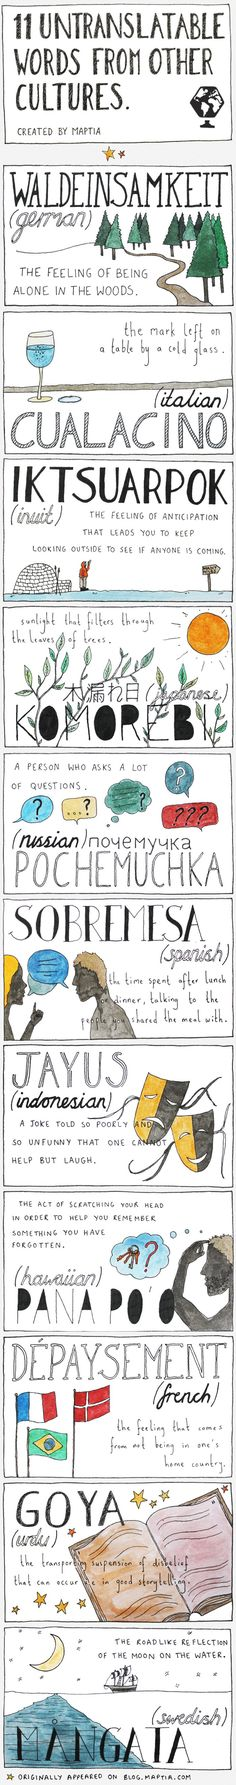 Untranslatable words in different cultures. What's yours?